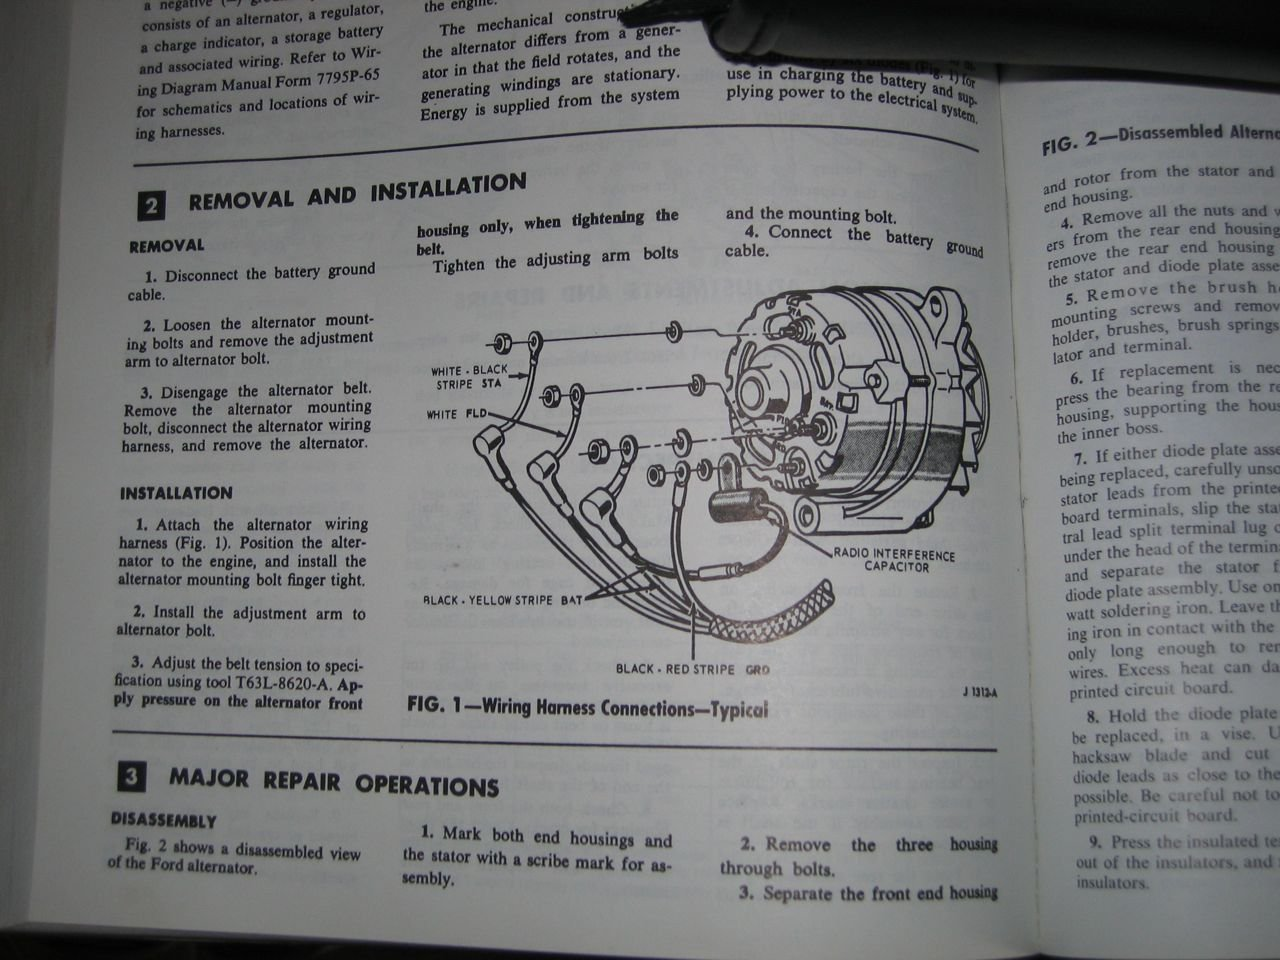 1965 Ford Alternator Wiring Diagram 35 Images F100 Harness Get Free Image About 93328d1268767403 1966 Mustang Img 0749 Forum